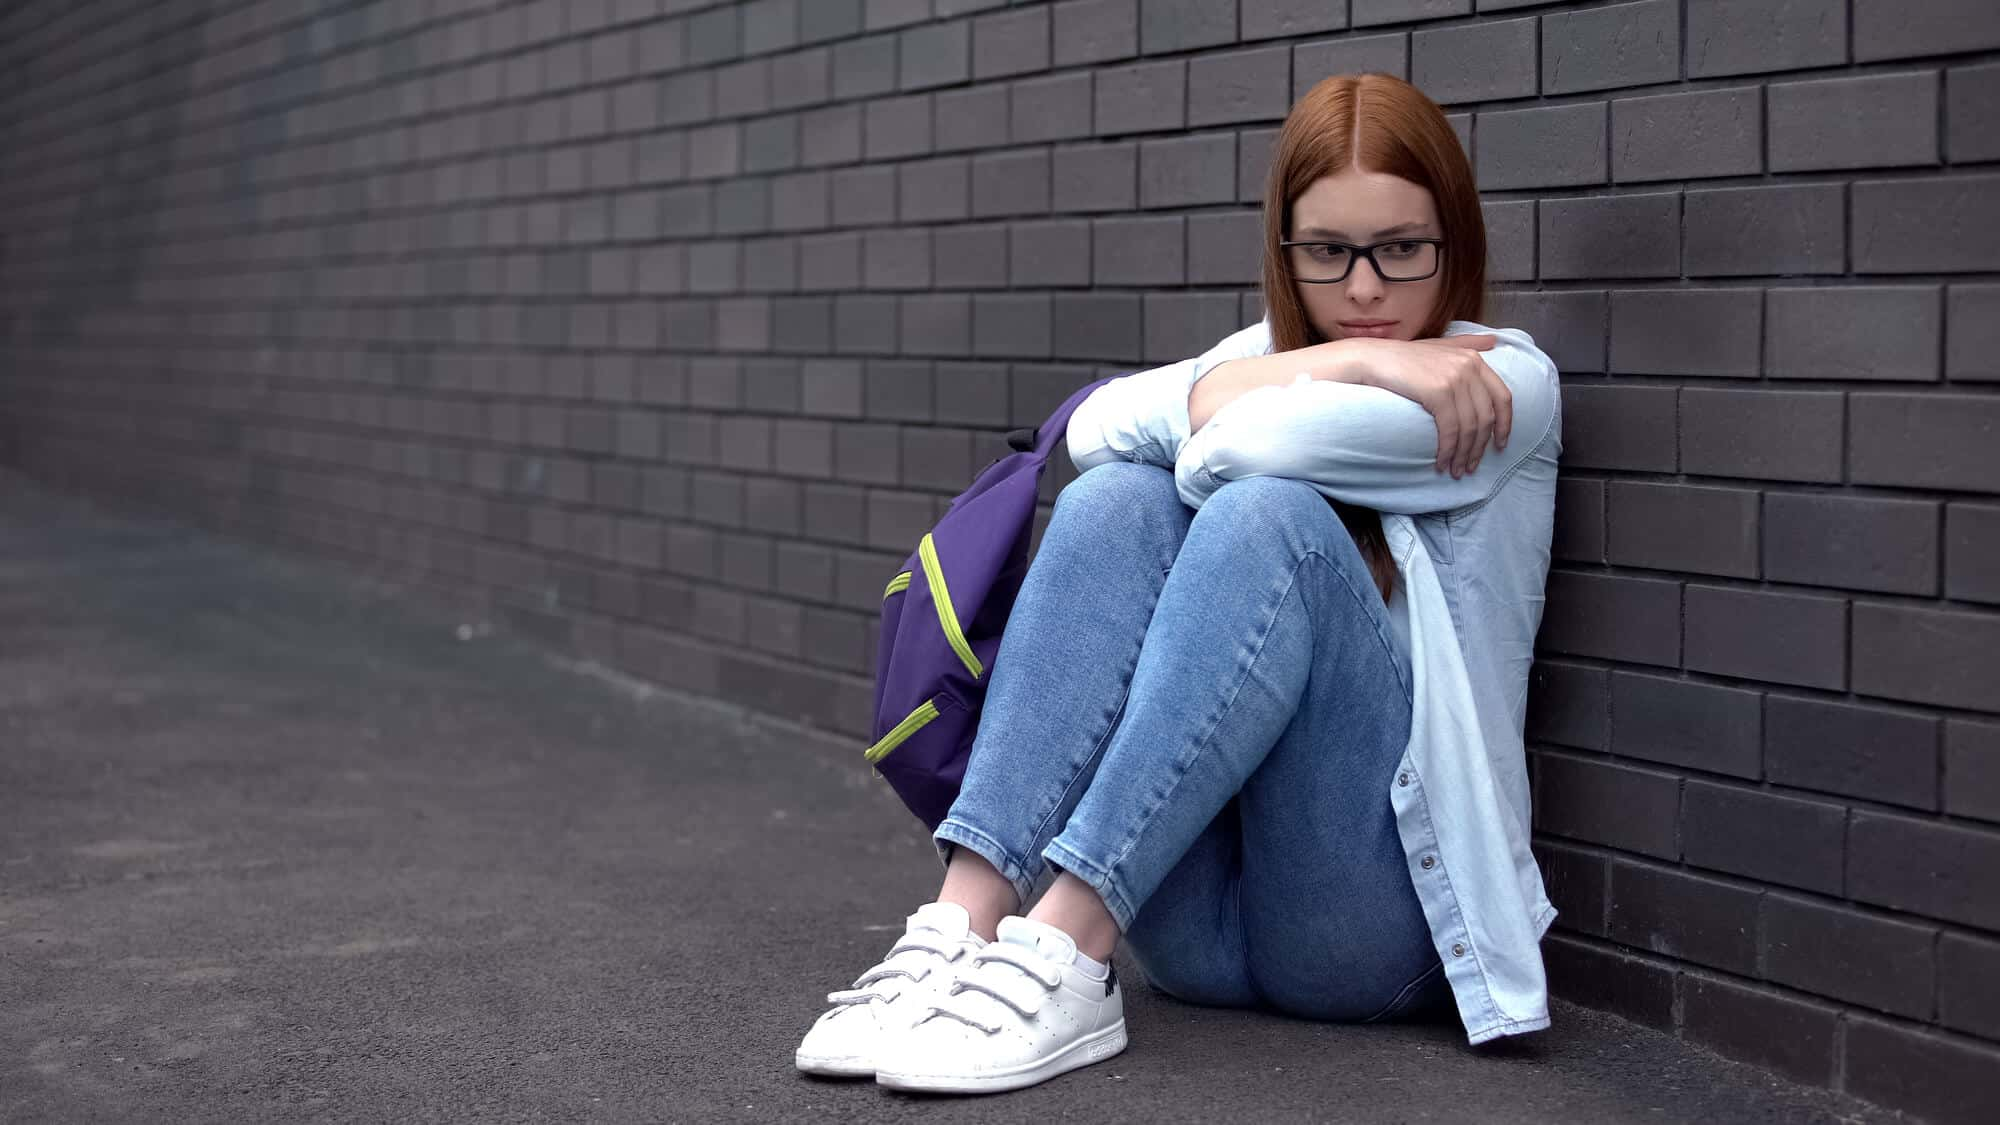 college students sitting on the ground holding her legs to her chest